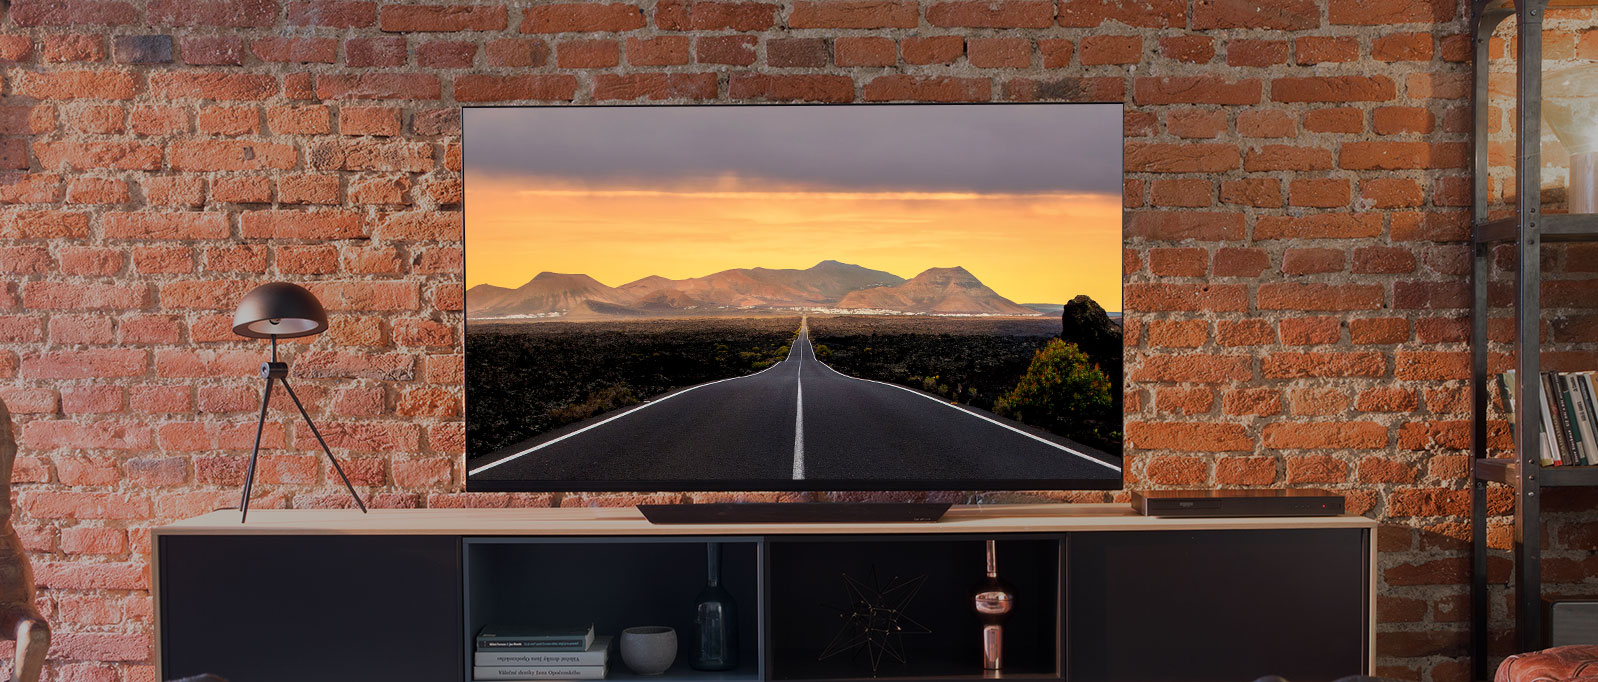 LG continues to transform the TV experience with ThinQ